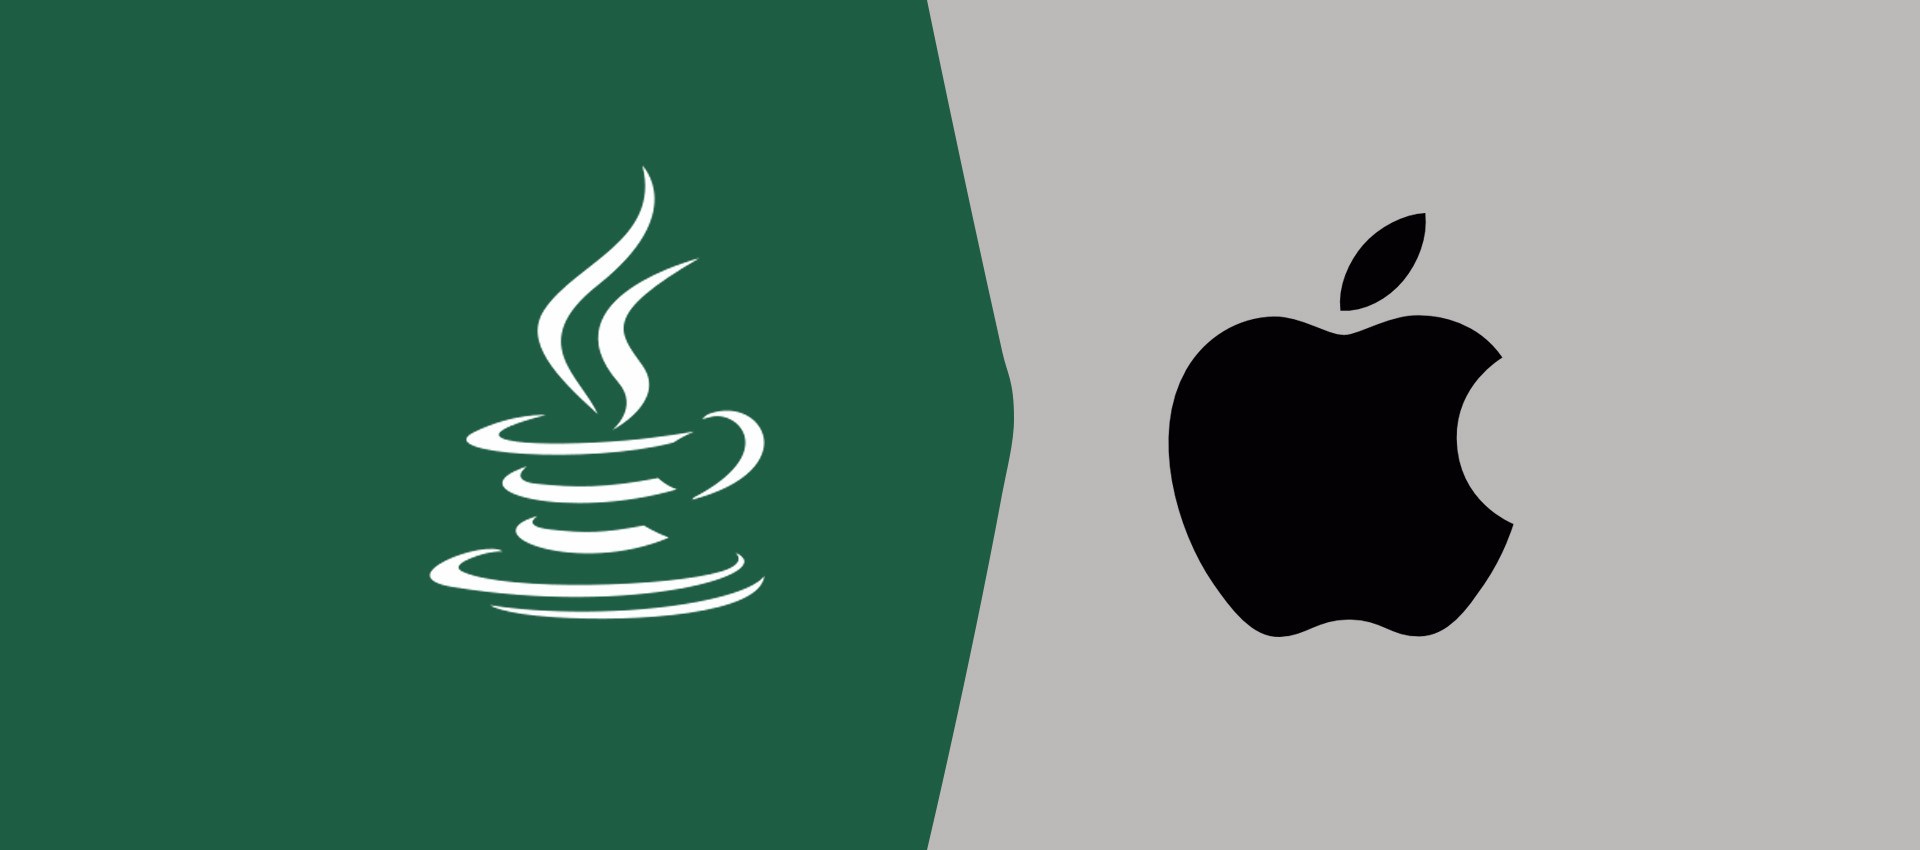 How To Install Java 11 On Mac